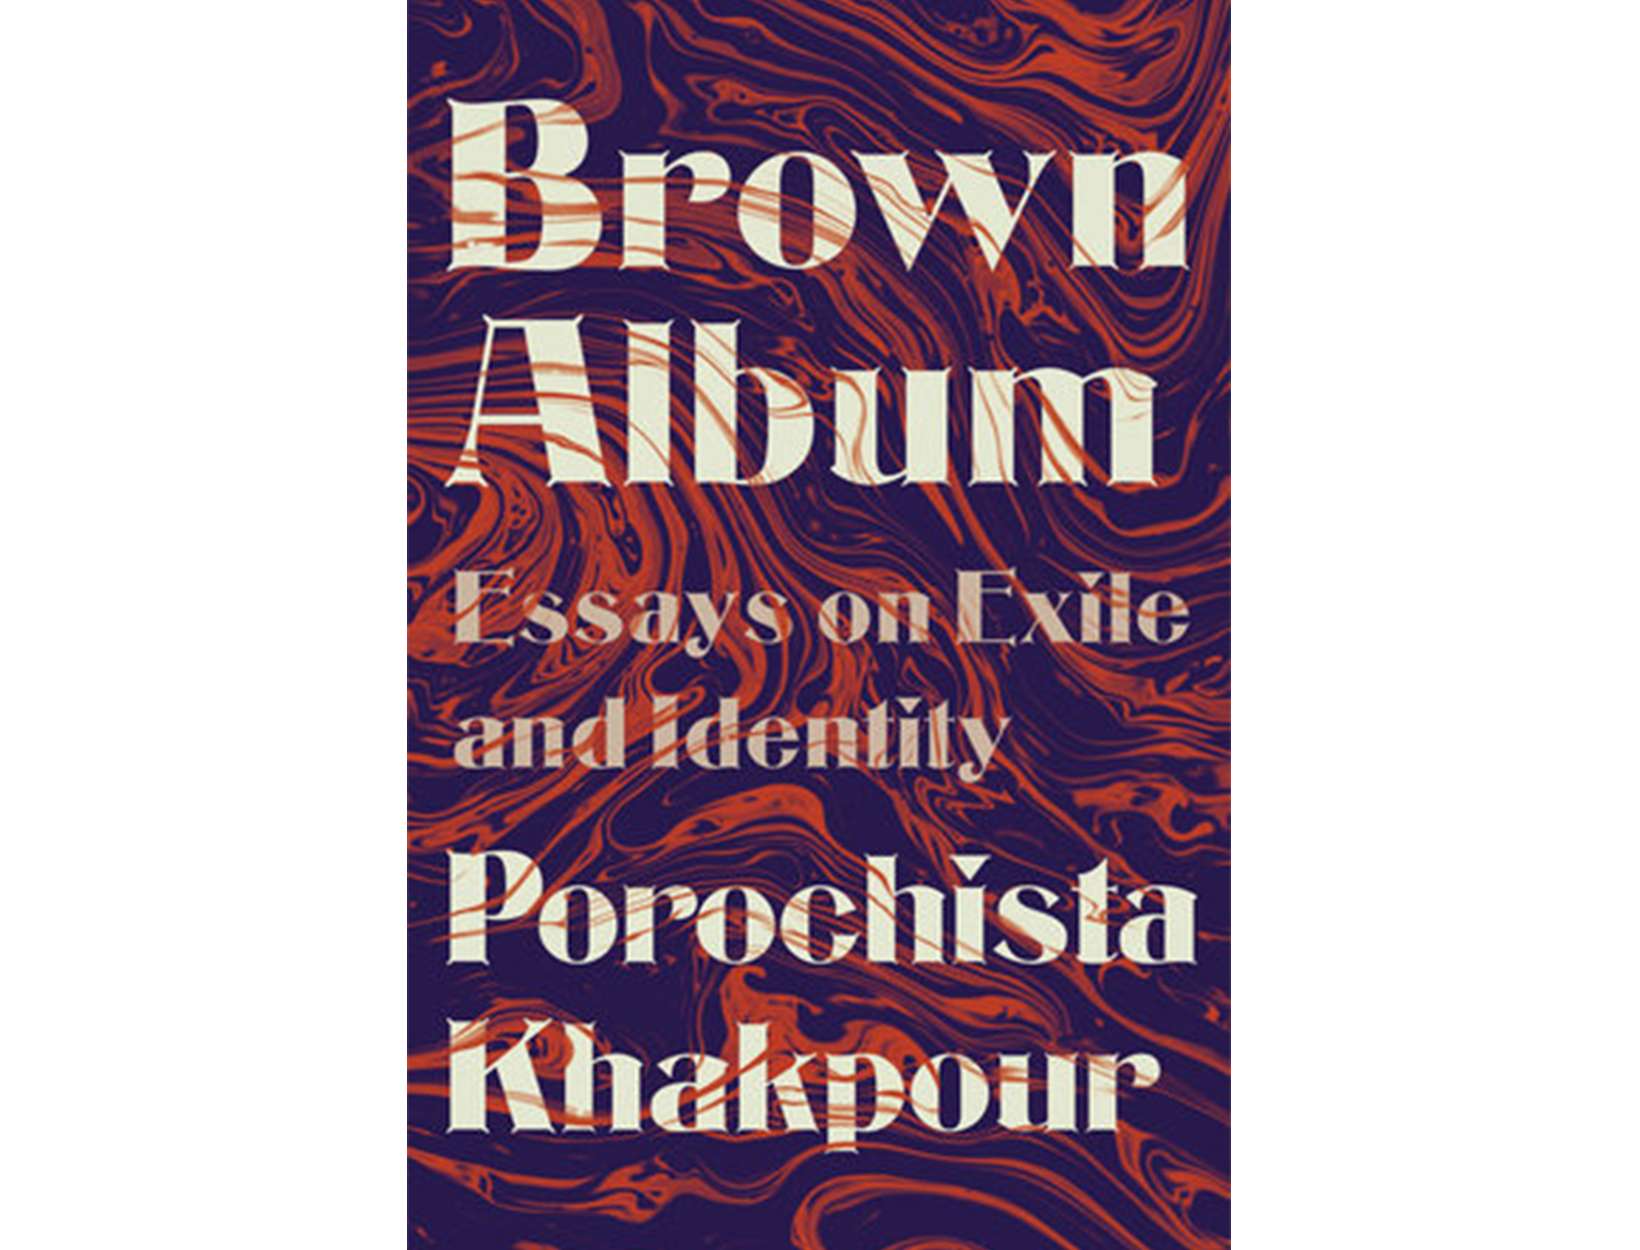 <em>Brown Album</em> by Porochista Khakpour